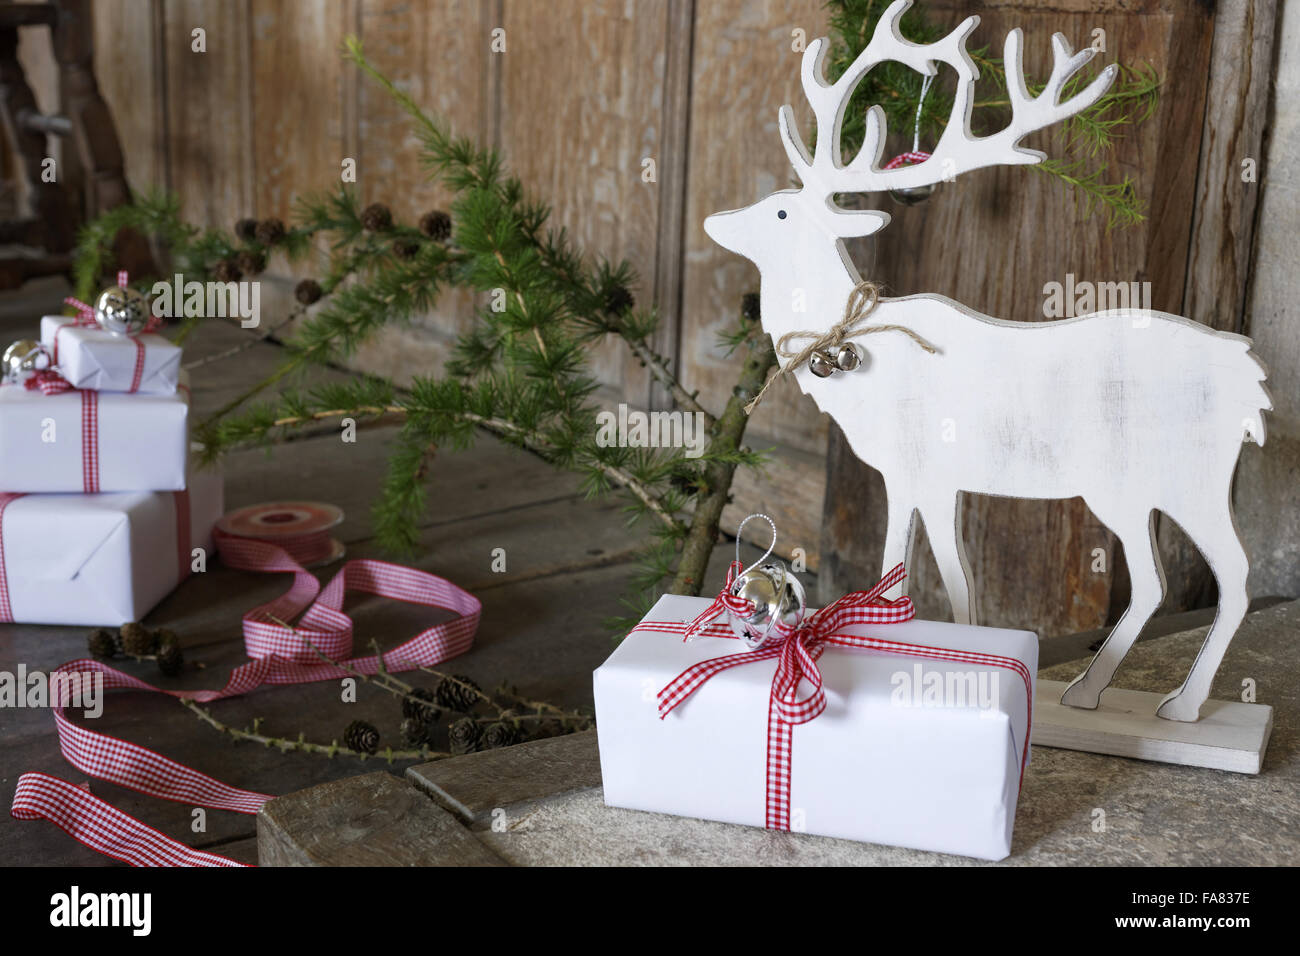 white wooden reindeer ornament with gift wrapped christmas